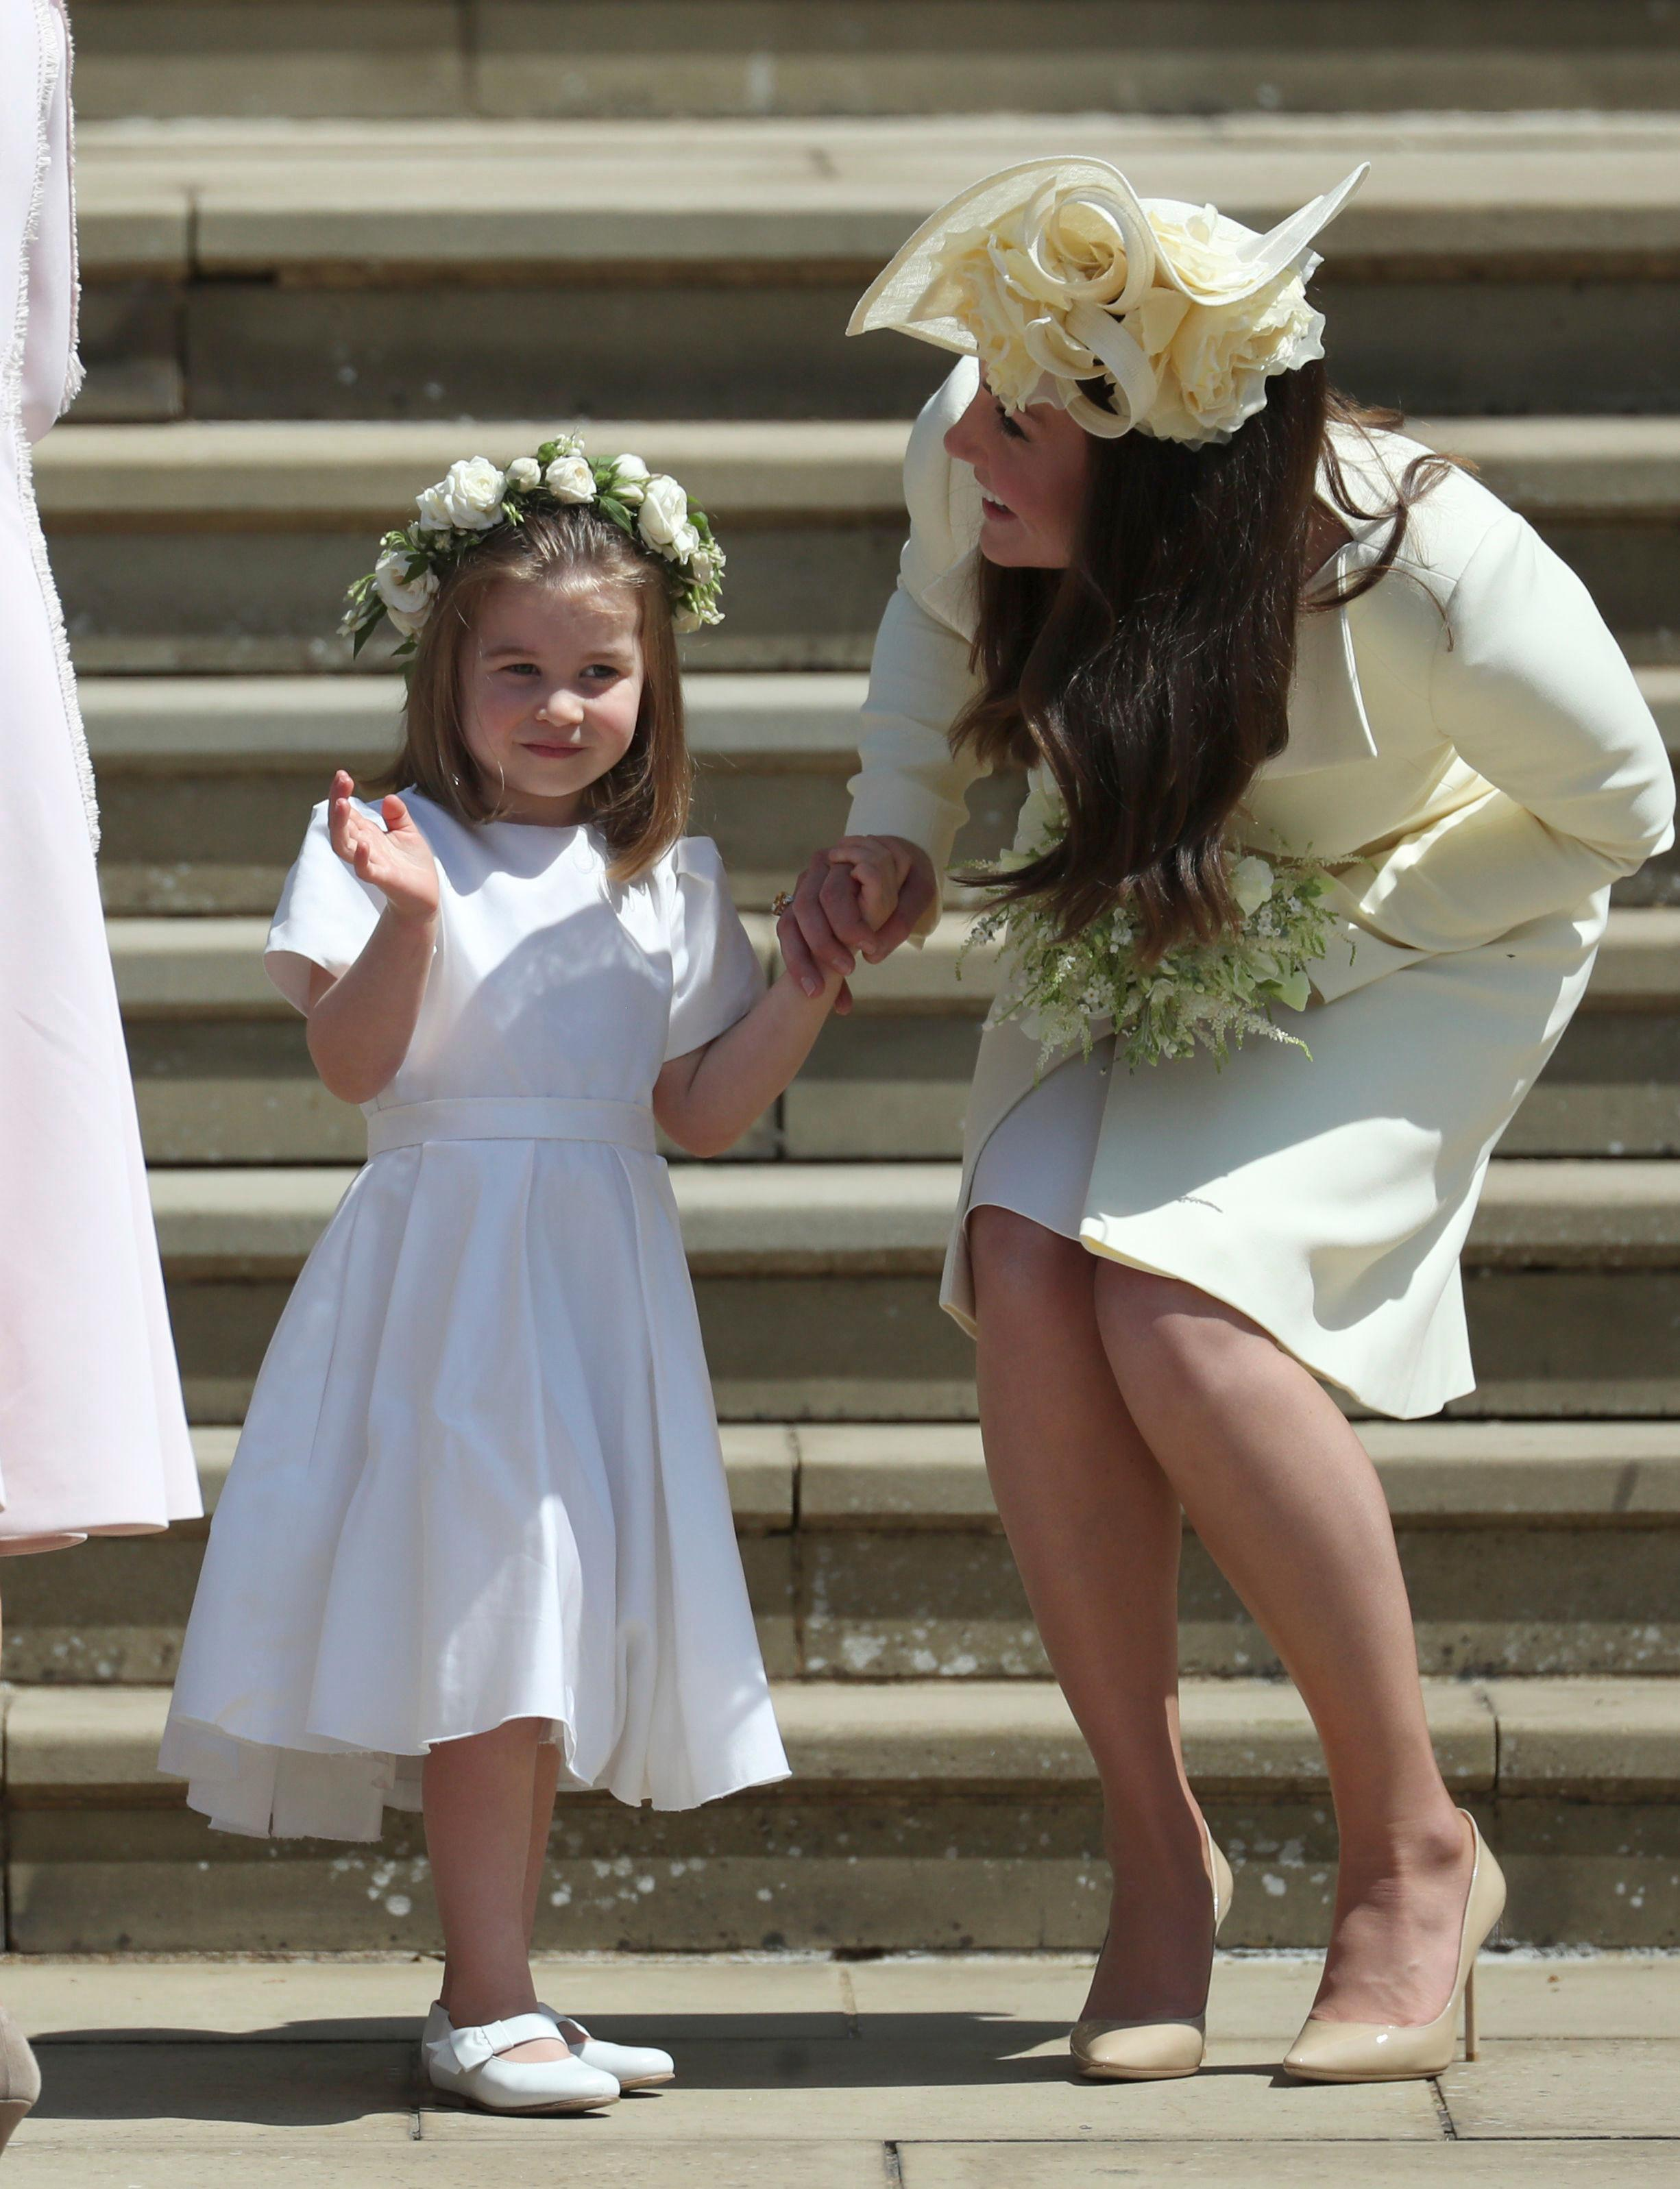 Princess Charlotte and Kate, Duchess of Cambridge after  the wedding ceremony of Prince Harry and Meghan Markle at St. George's Chapel in Windsor Castle in Windsor, near London, England, Saturday, May 19, 2018. (Jane Barlow/pool photo via AP)